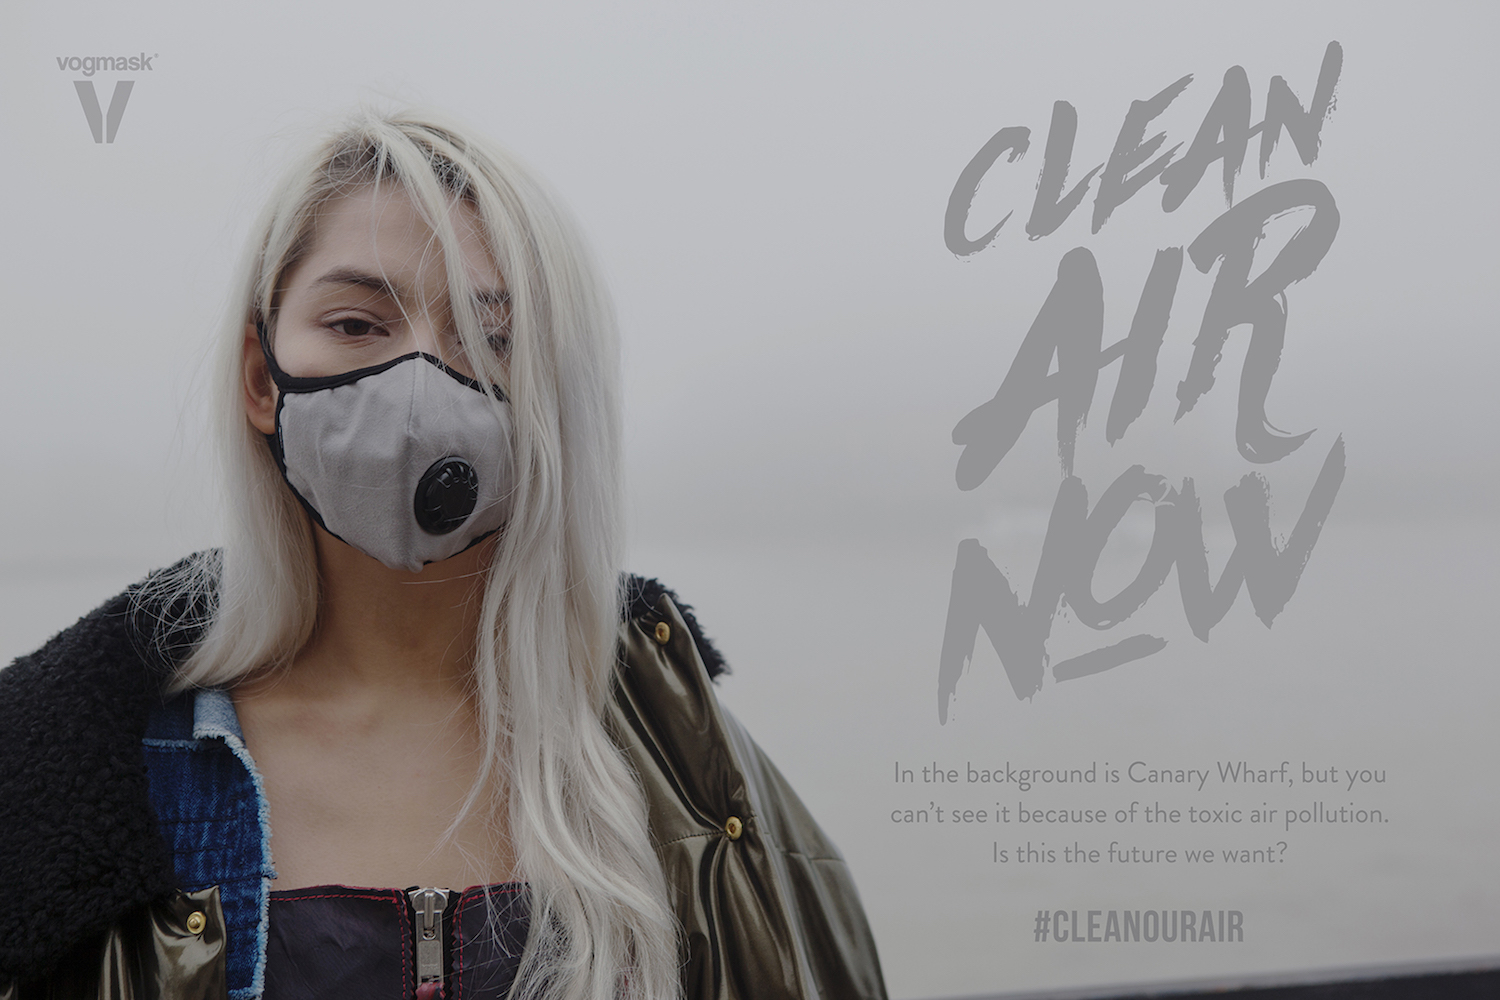 Clean Air Now Billboard featuring Vogmask